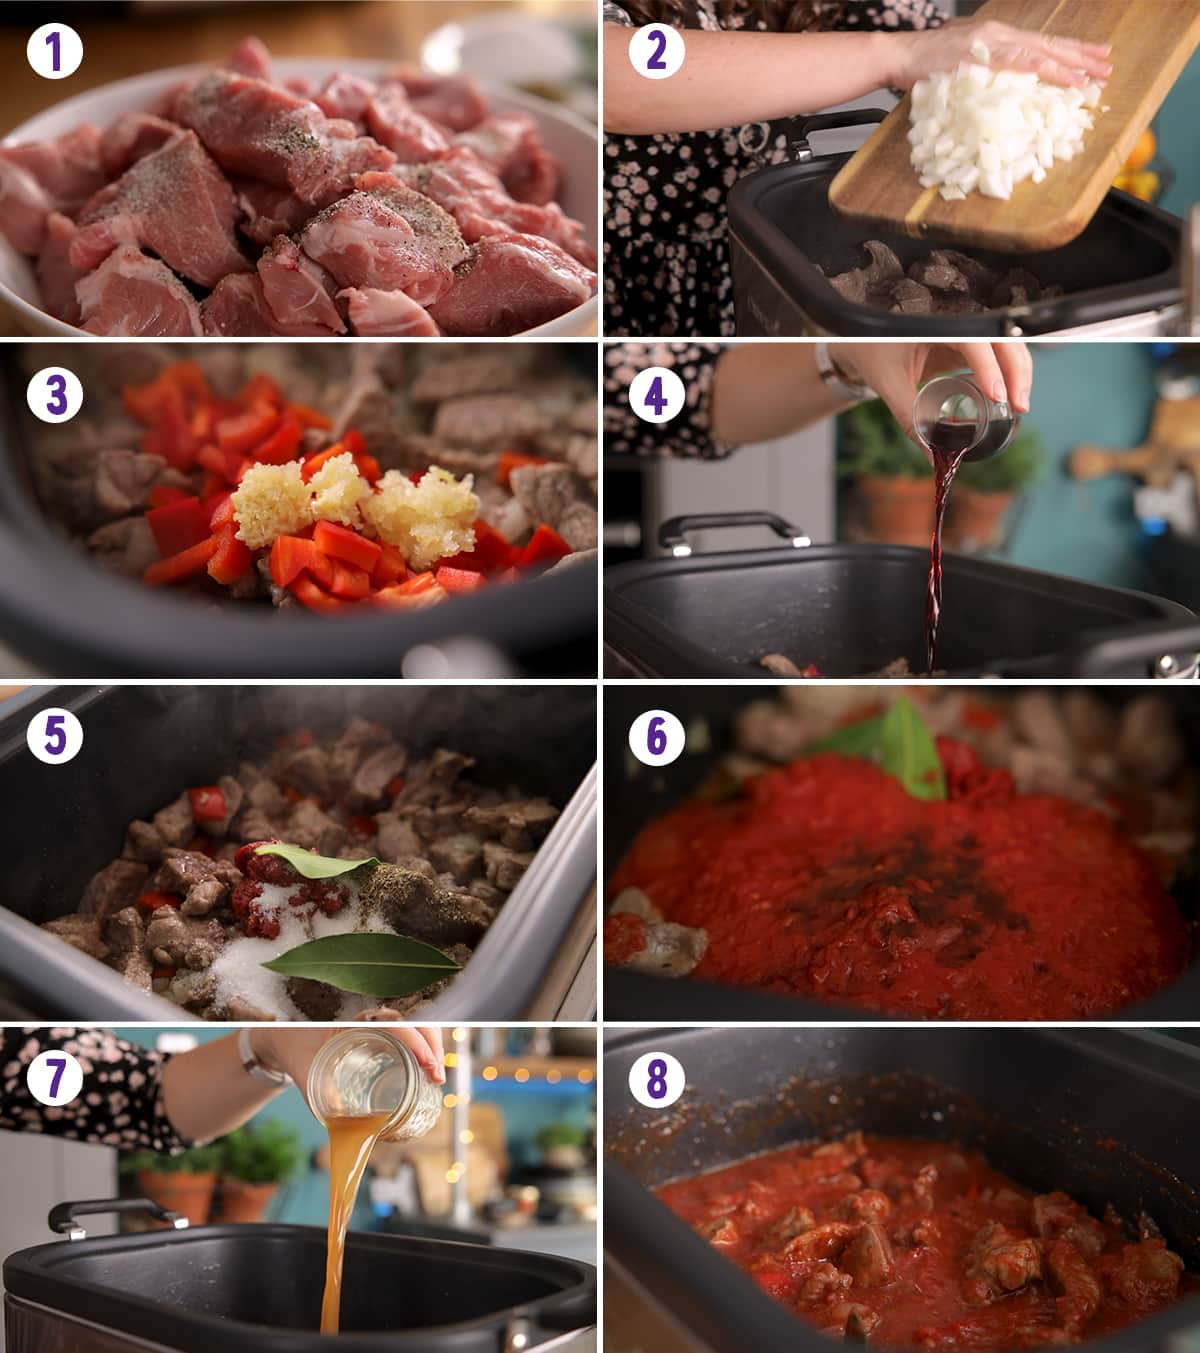 8 image collage showing how to make slow cooked pork ragu